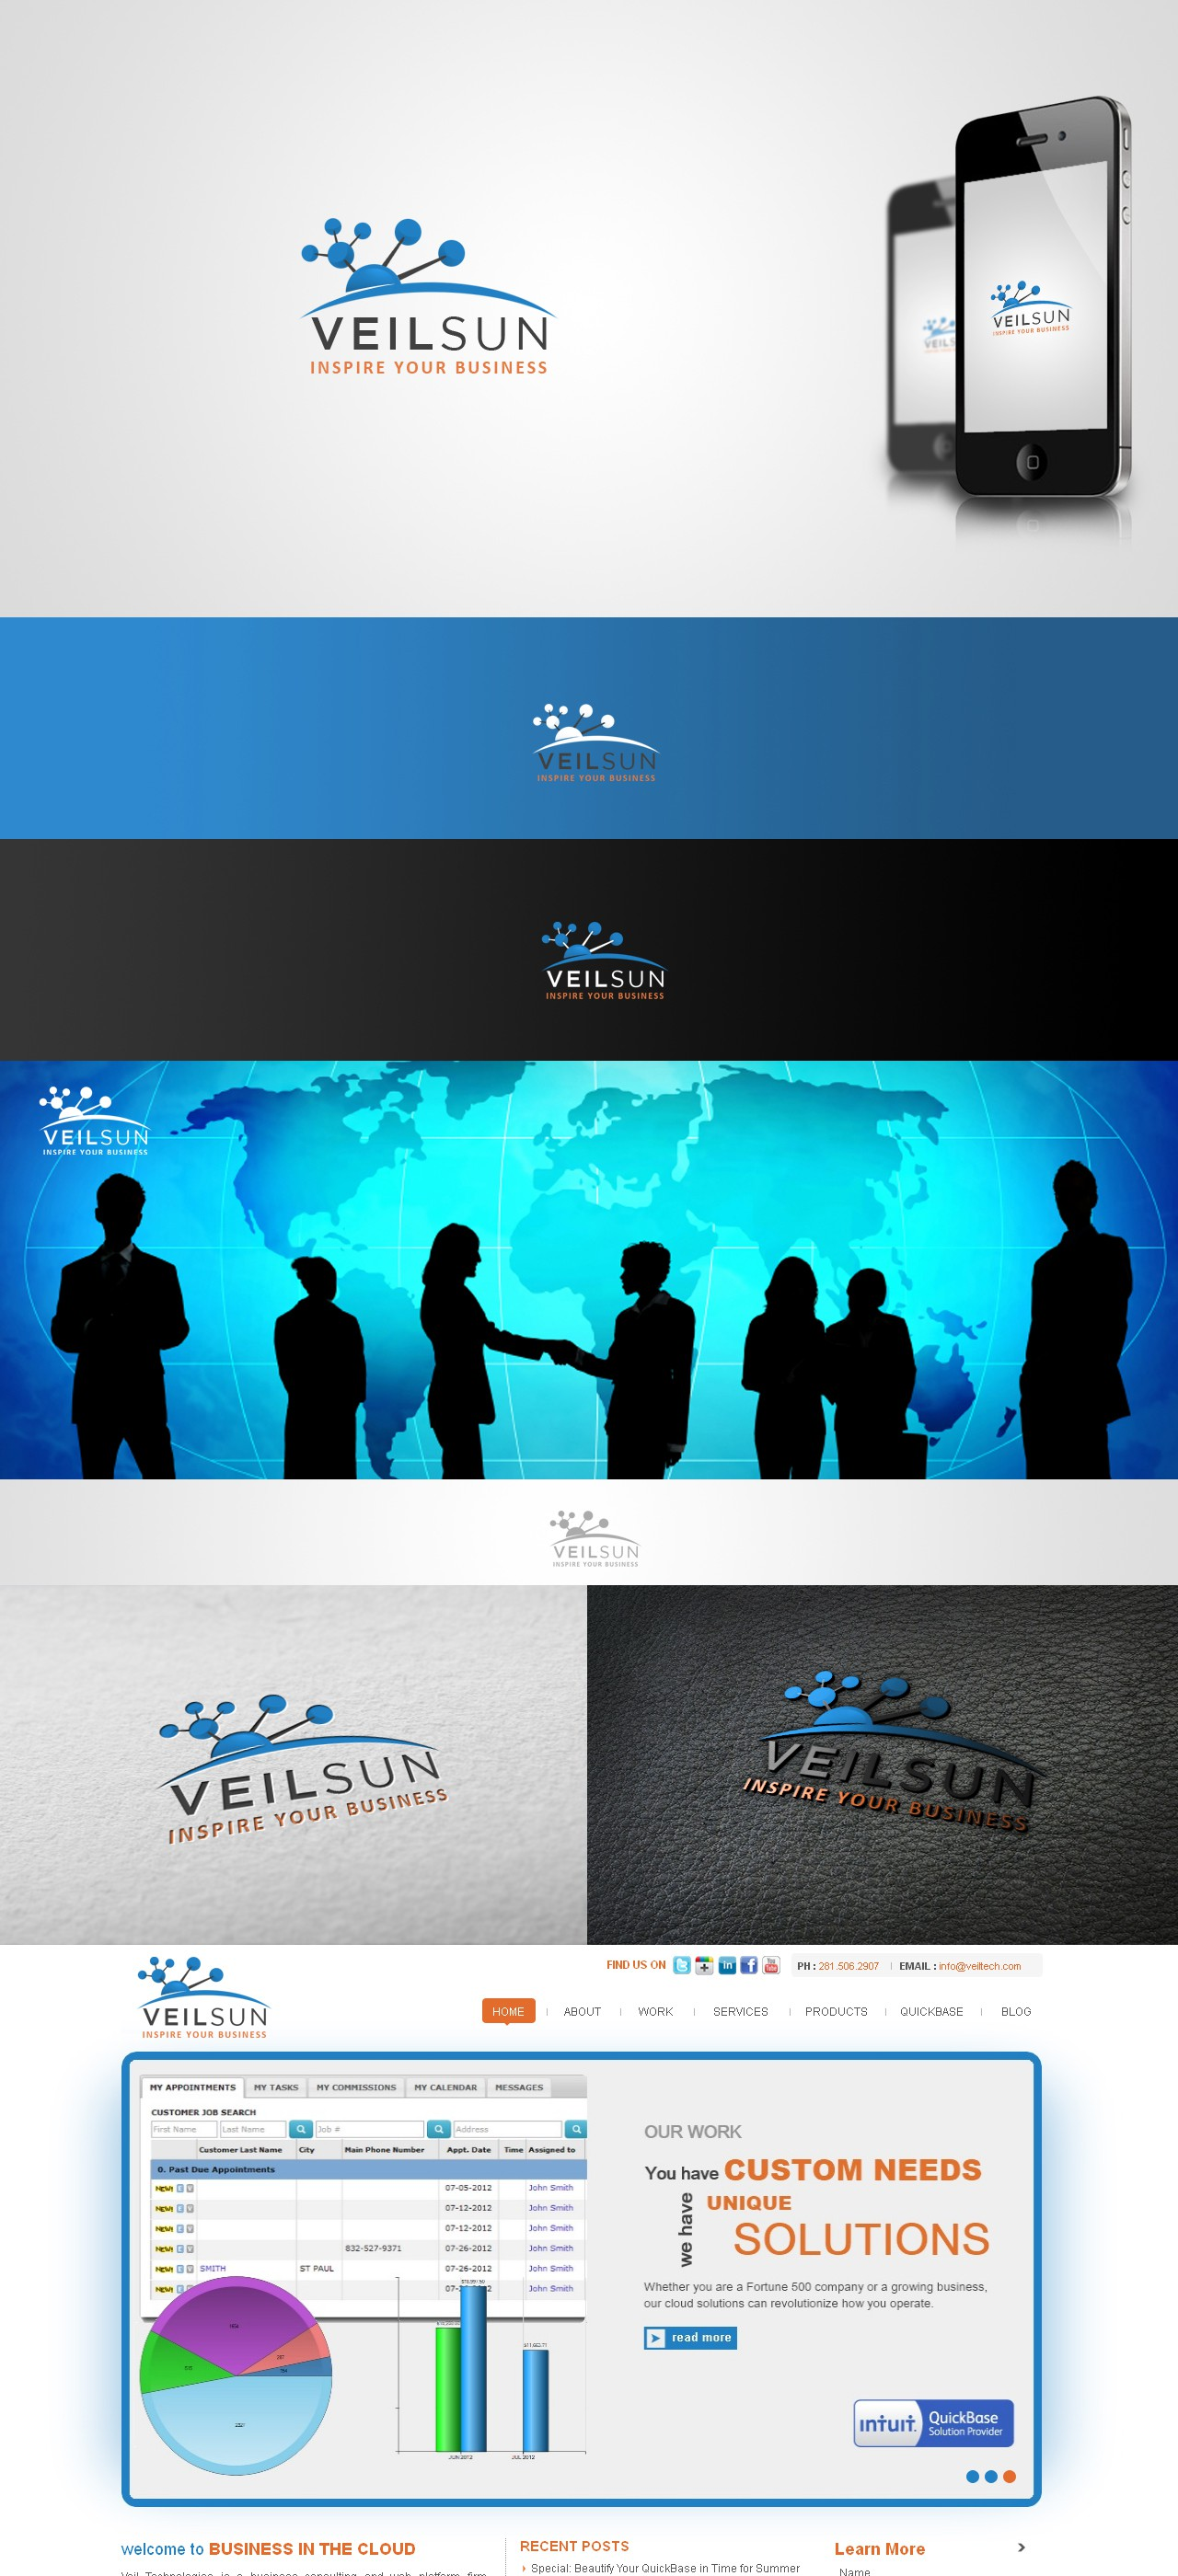 Help Veilsun with a new logo